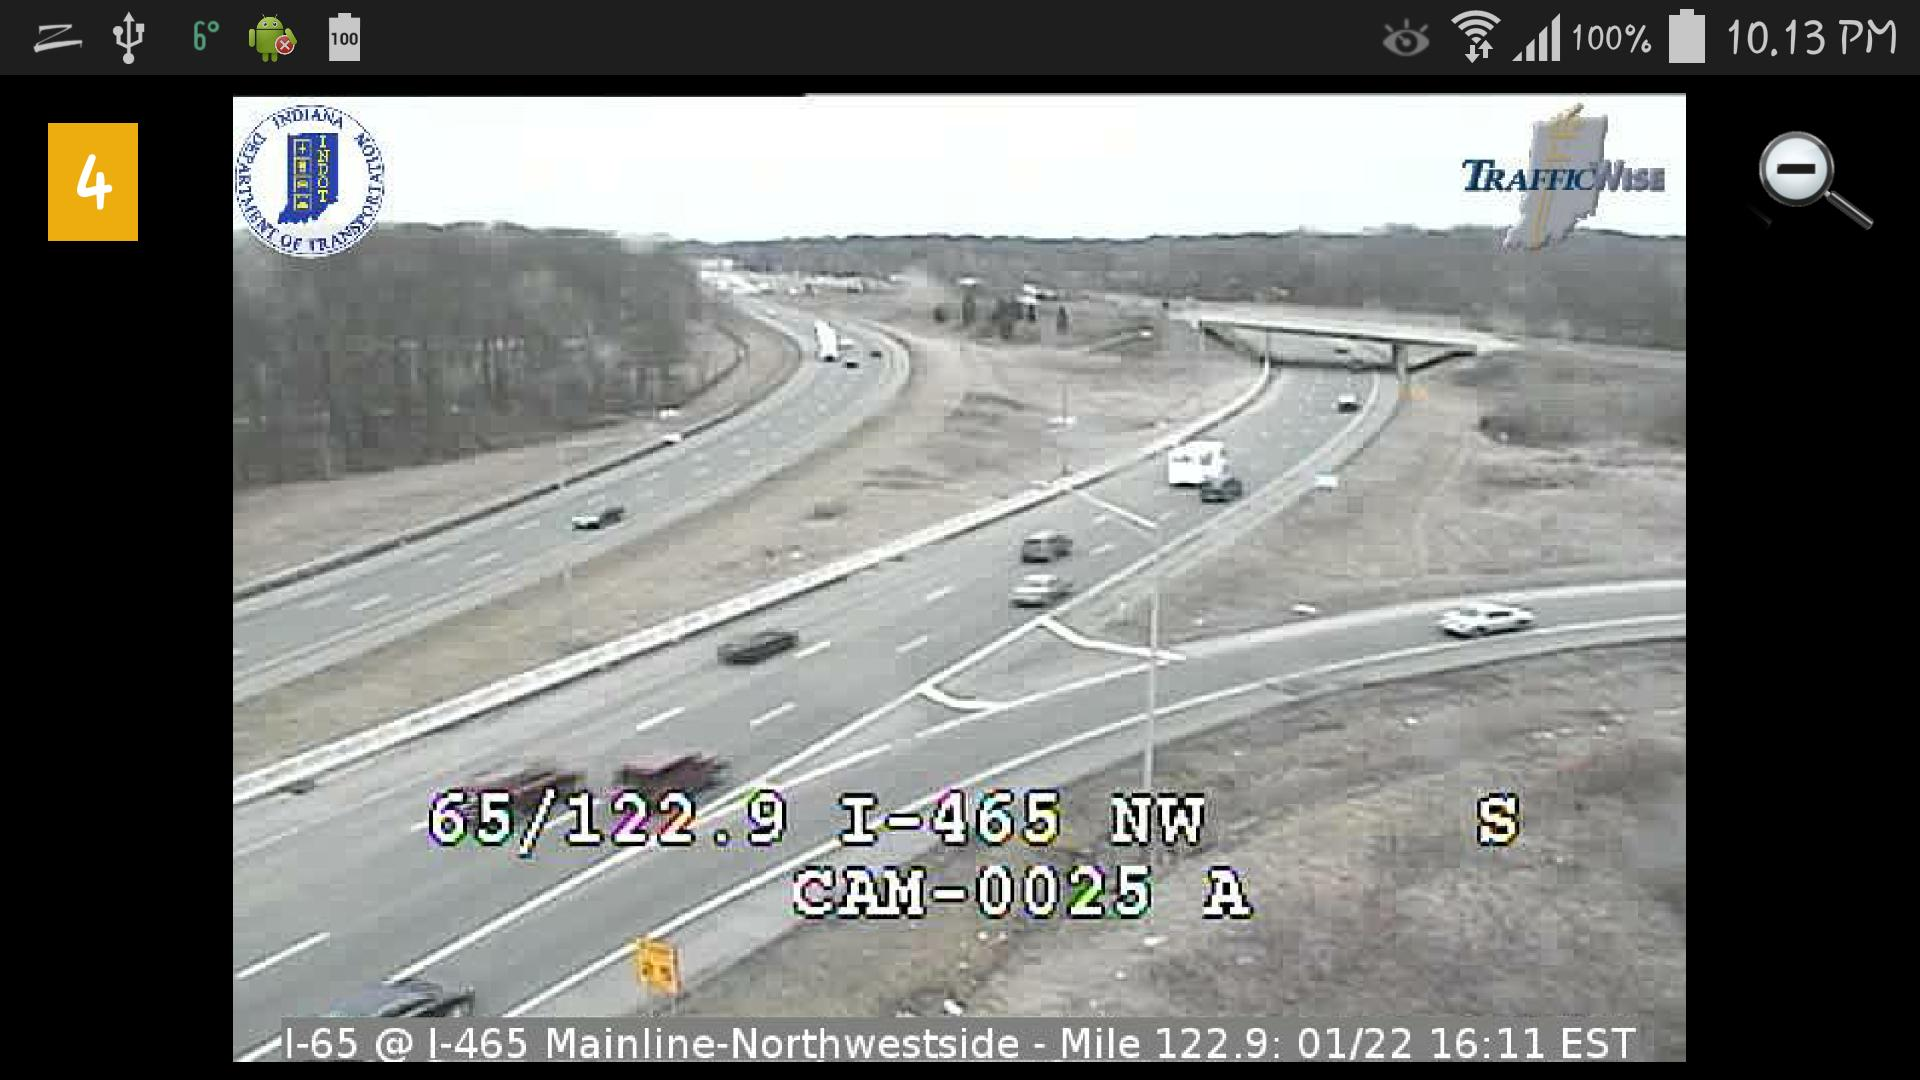 Cameras Indiana - traffic cams for Android - APK Download